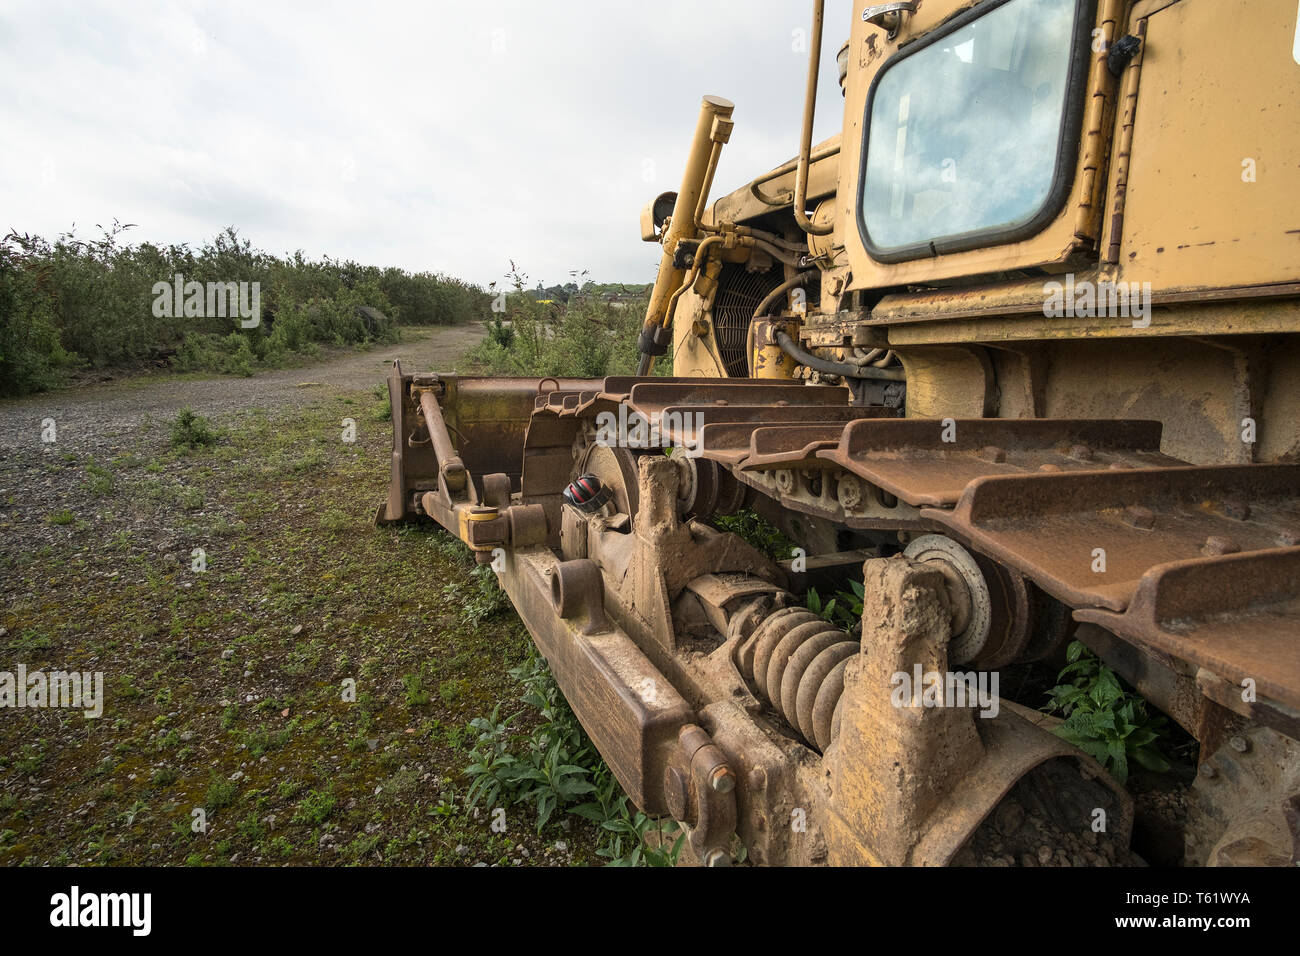 Rusty yellow bulldozer forward view - Stock Image